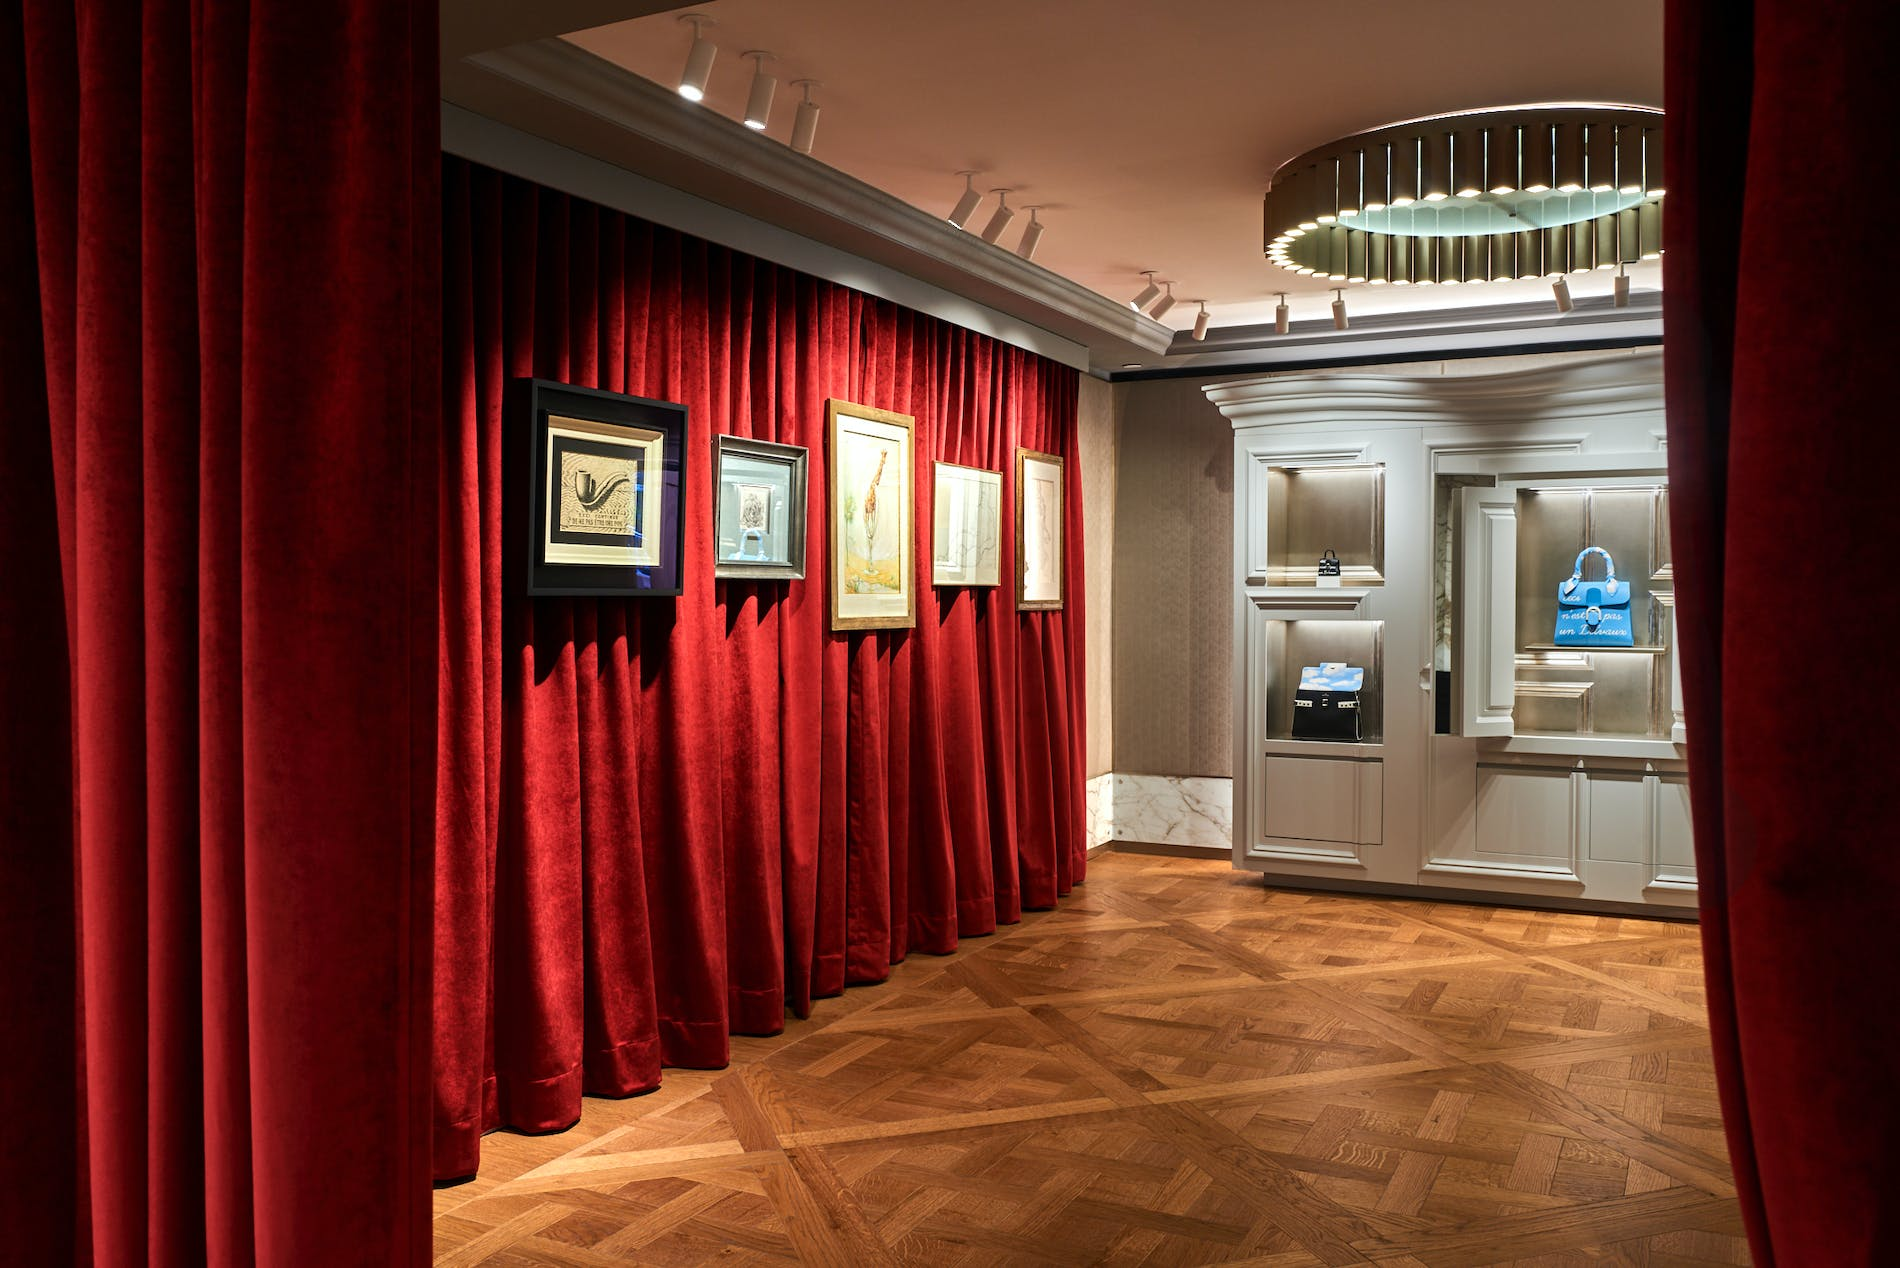 1558101046345554 delvaux magritte foundation exhibition nyc 8